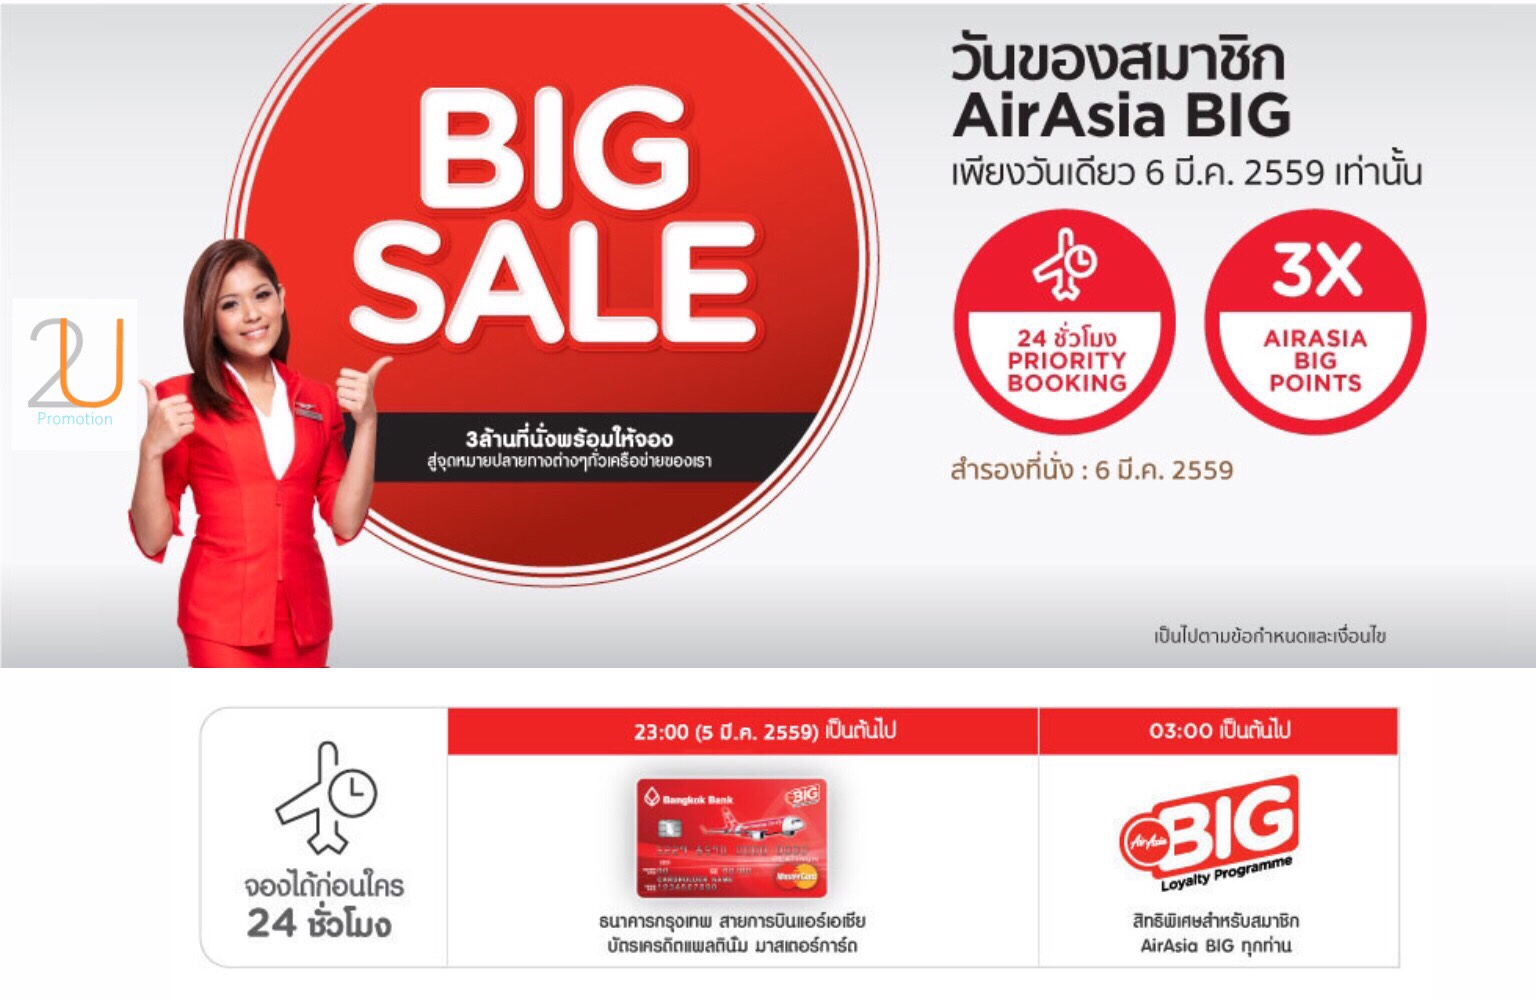 Airasia big point big sale